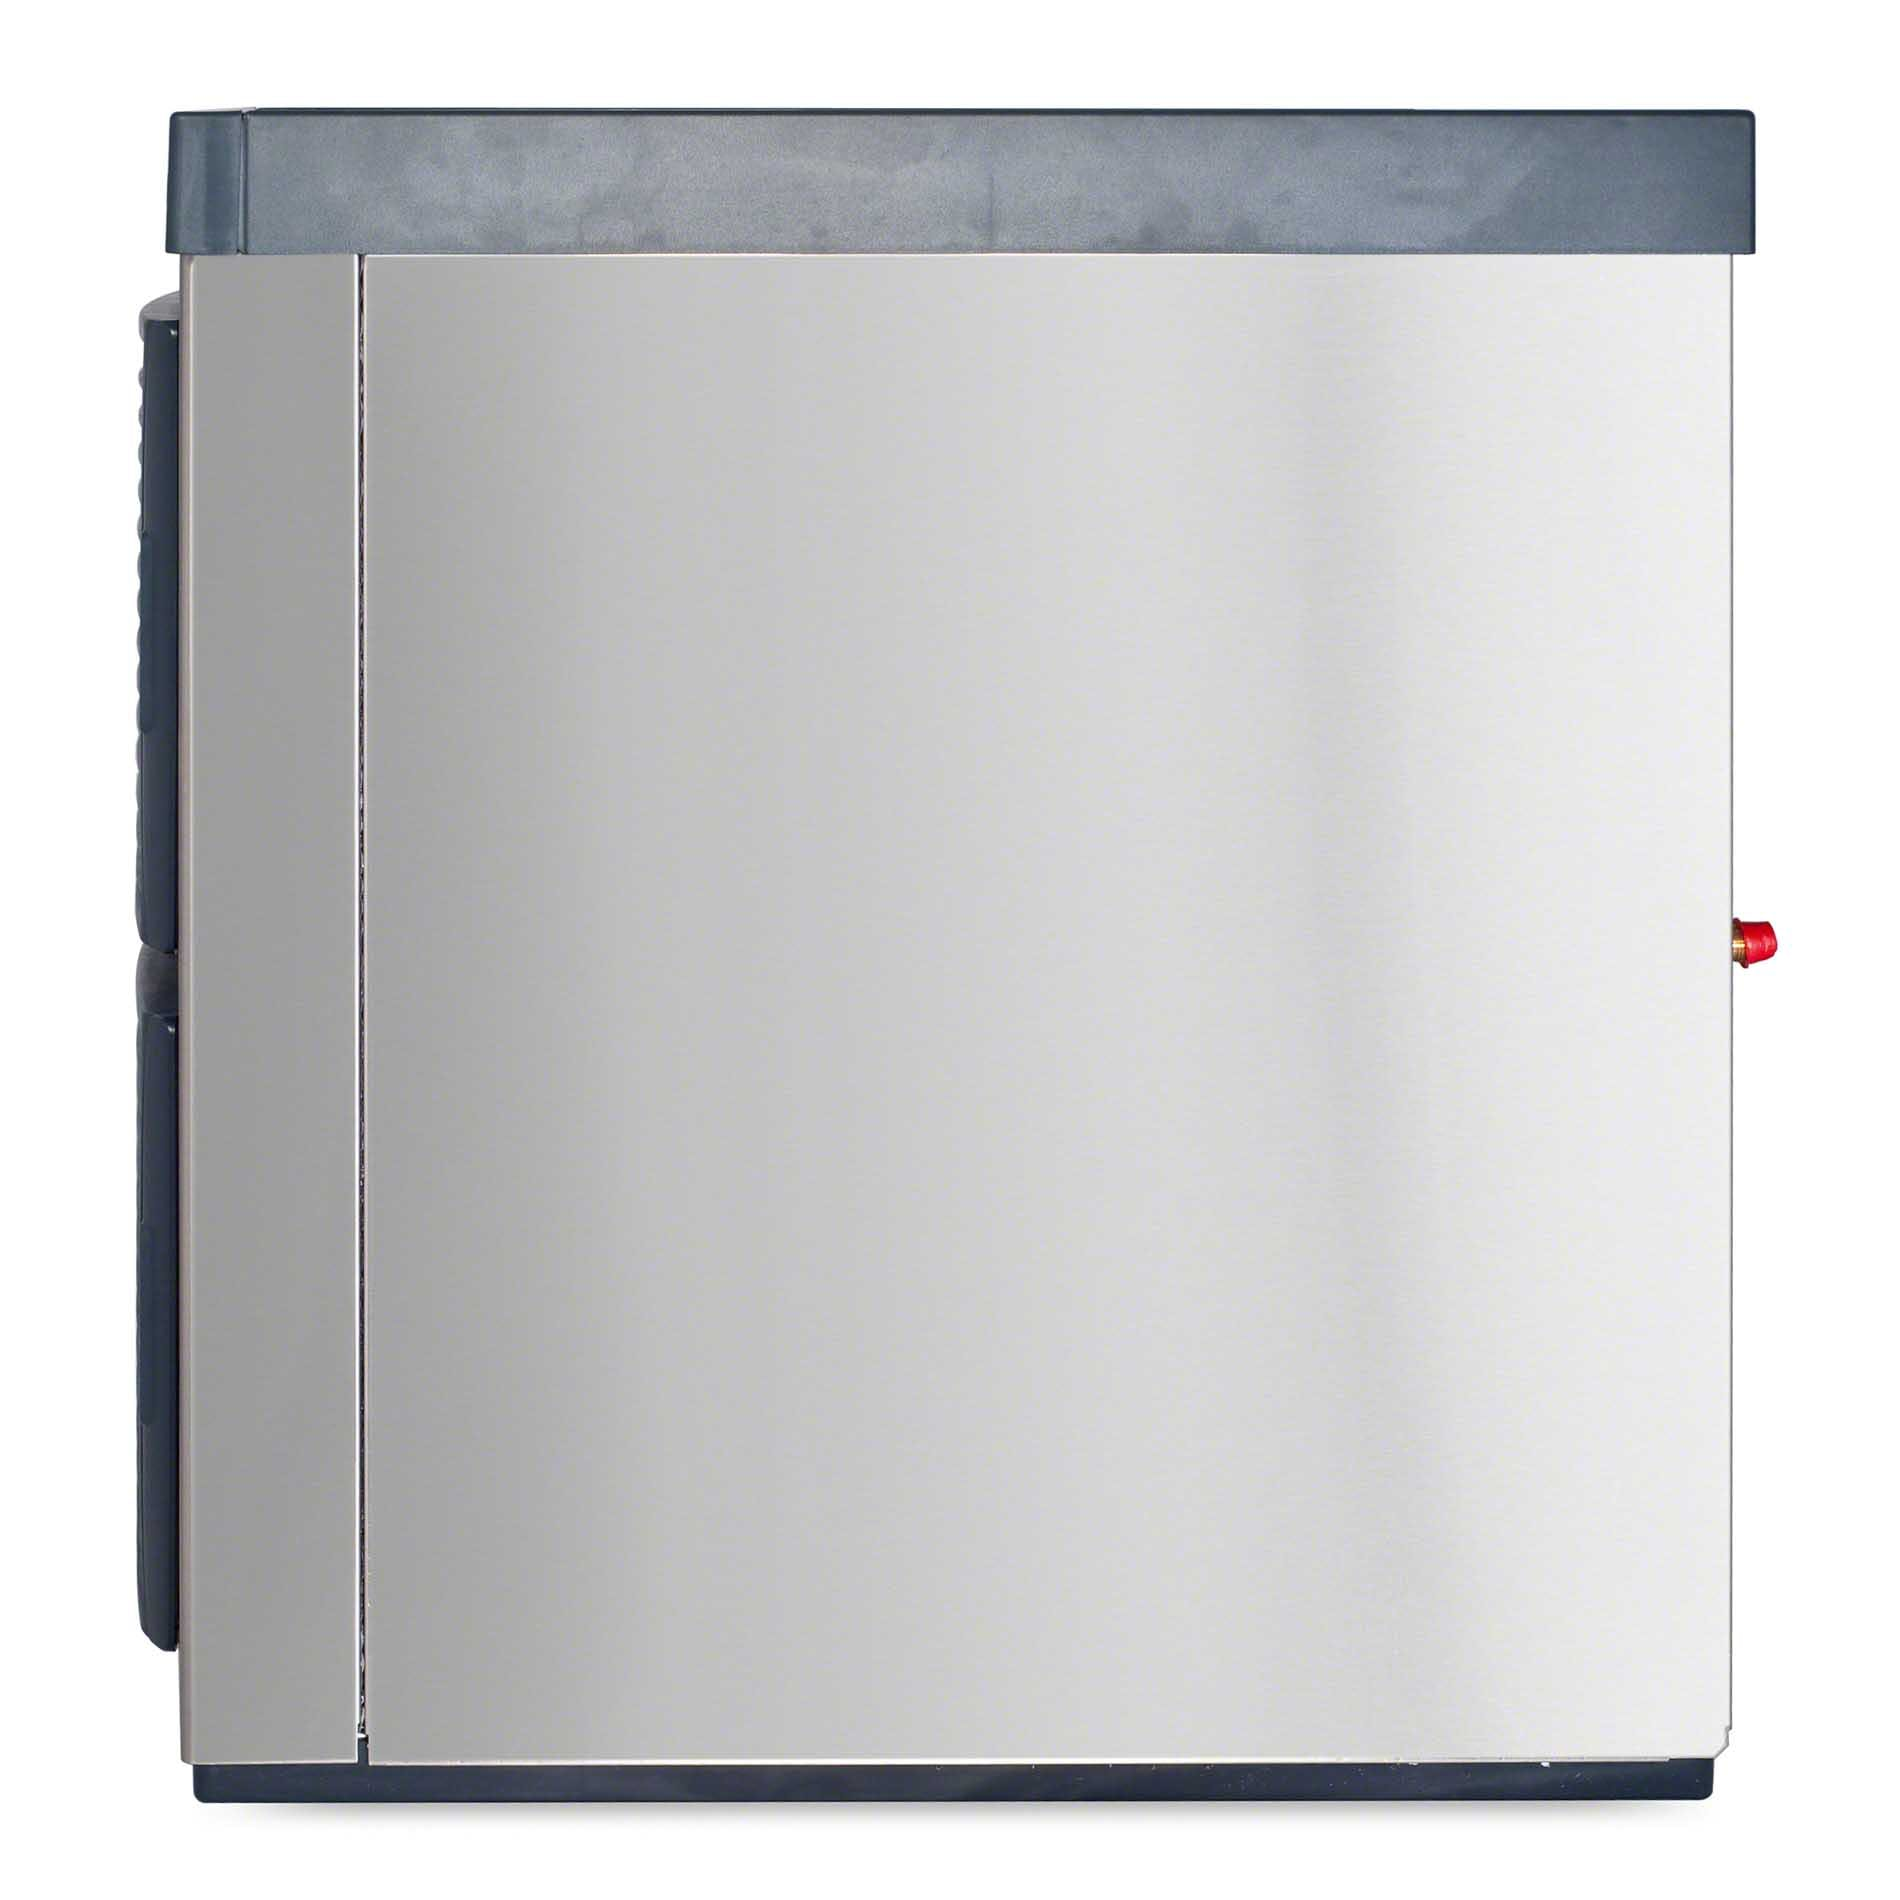 Scotsman - N0922A-32A 956 lb Nugget Ice Machine - Prodigy Series - sold by Food Service Warehouse